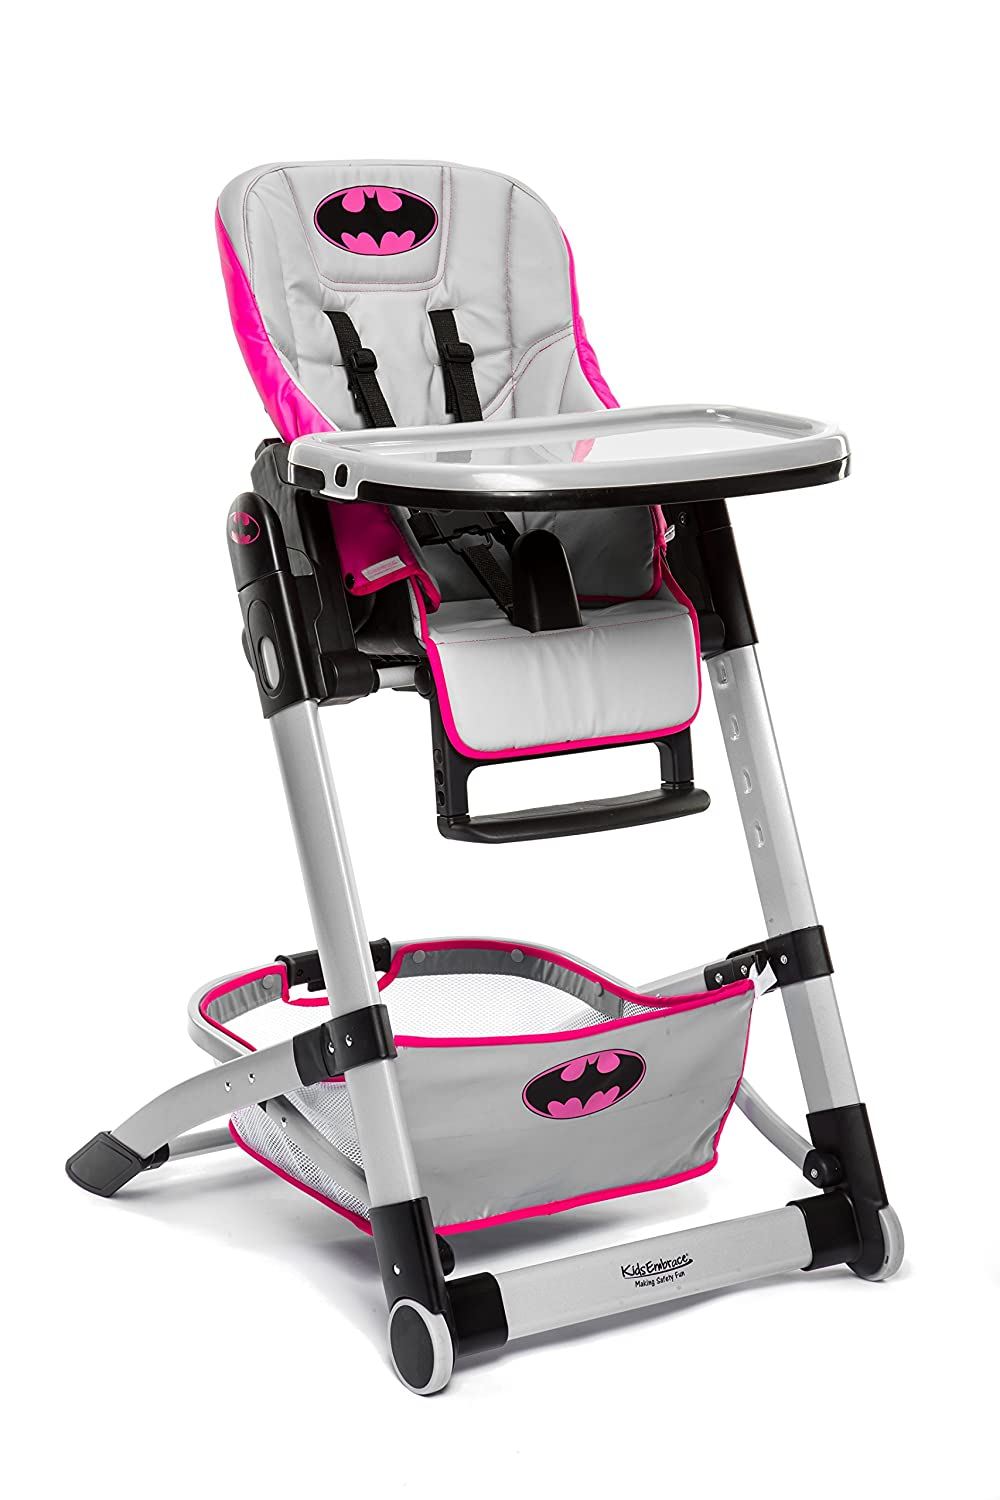 KidsEmbrace Batgirl Convertible High Chair, DC Comics Deluxe Adjustable High Chair, Gray, 6601BTG Kids Embrace Baby